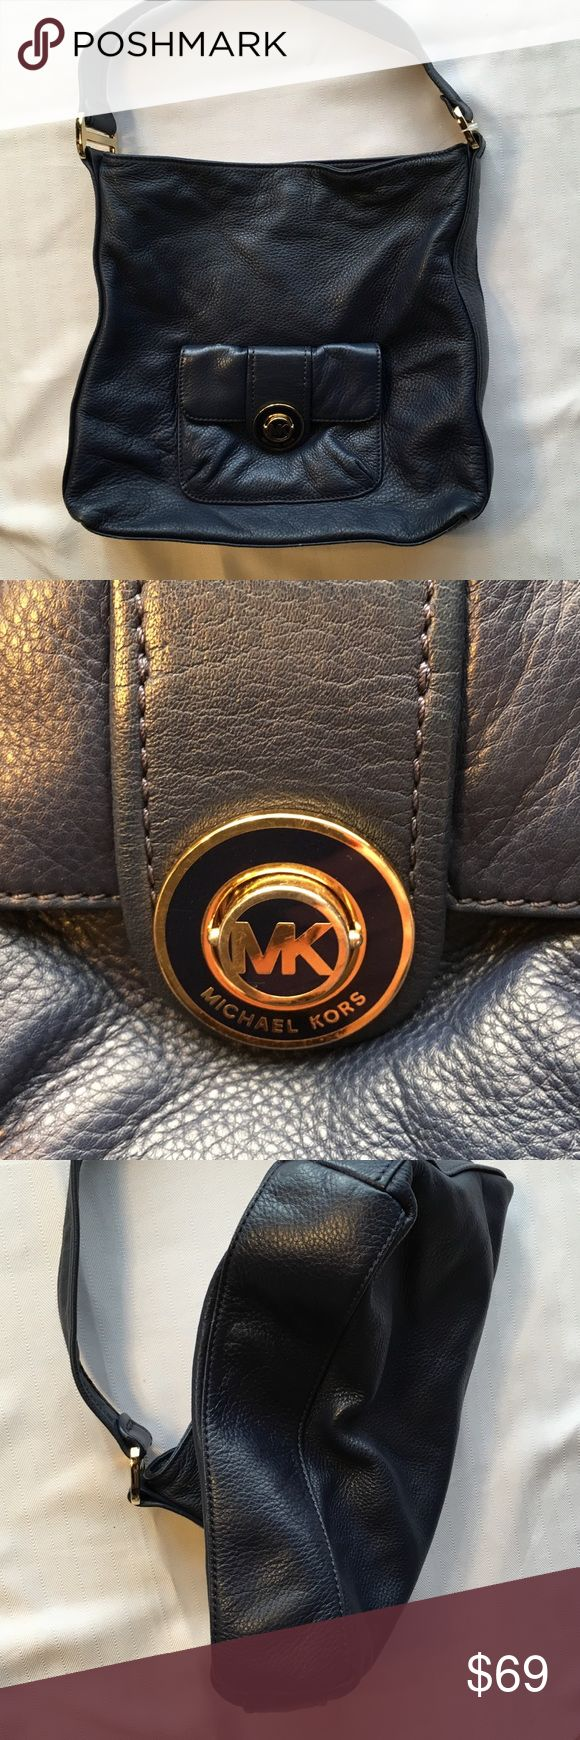 """Authentic Michael Kors Navy Handbag Excellent condition Michael by Michael Kors navy shoulder bag.  Approximate dimensions 12 1/2x13 1/2 x 2"""".  One very small scrape near the top of the front pocket see last pic.  Clean interior.  Smoke free, pet free home. MICHAEL Michael Kors Bags Shoulder Bags"""